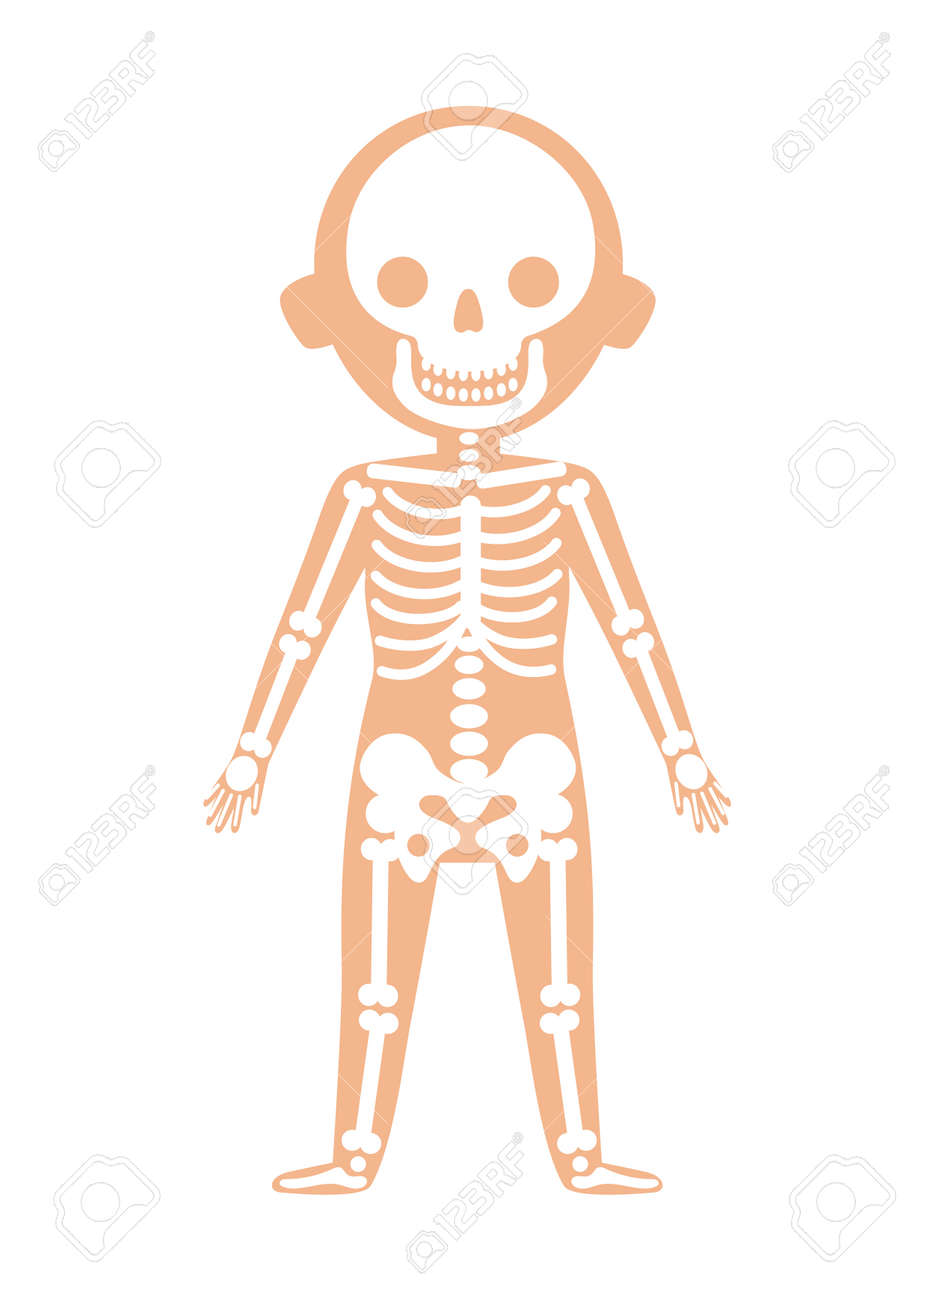 Boy Body Anatomy With Skeleton System. Health Medical Icon, Internal ...